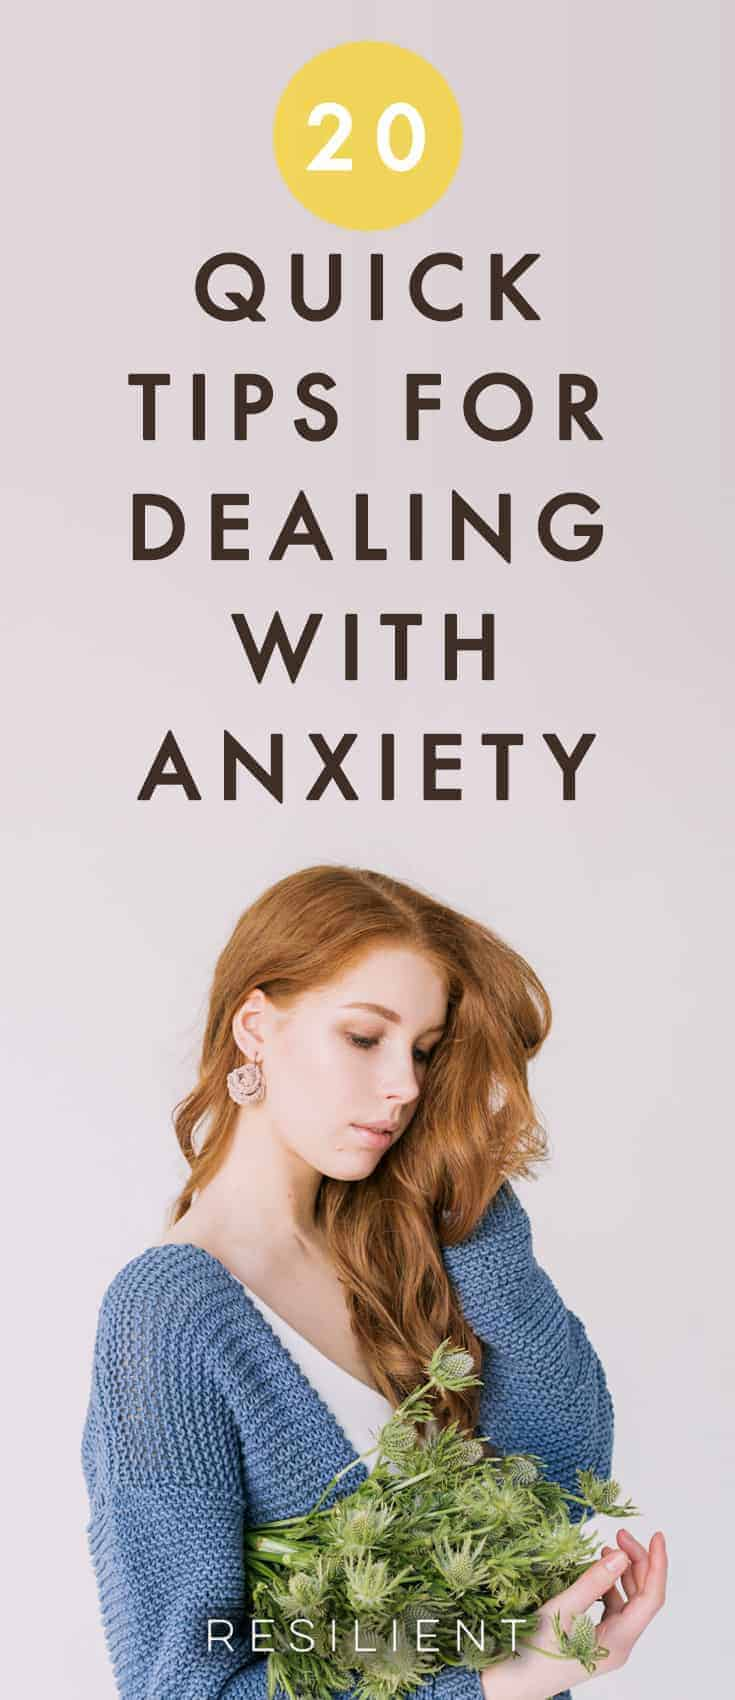 Anxiety is tough, but luckily there are a few tips for anxiety that can help make it a little easier. I've found that anxiety is usually actually trying to tell you something, so it can be helpful to let yourself feel your feelings first to figure out what's really going on.  Here are 20 quick tips for dealing with anxiety.